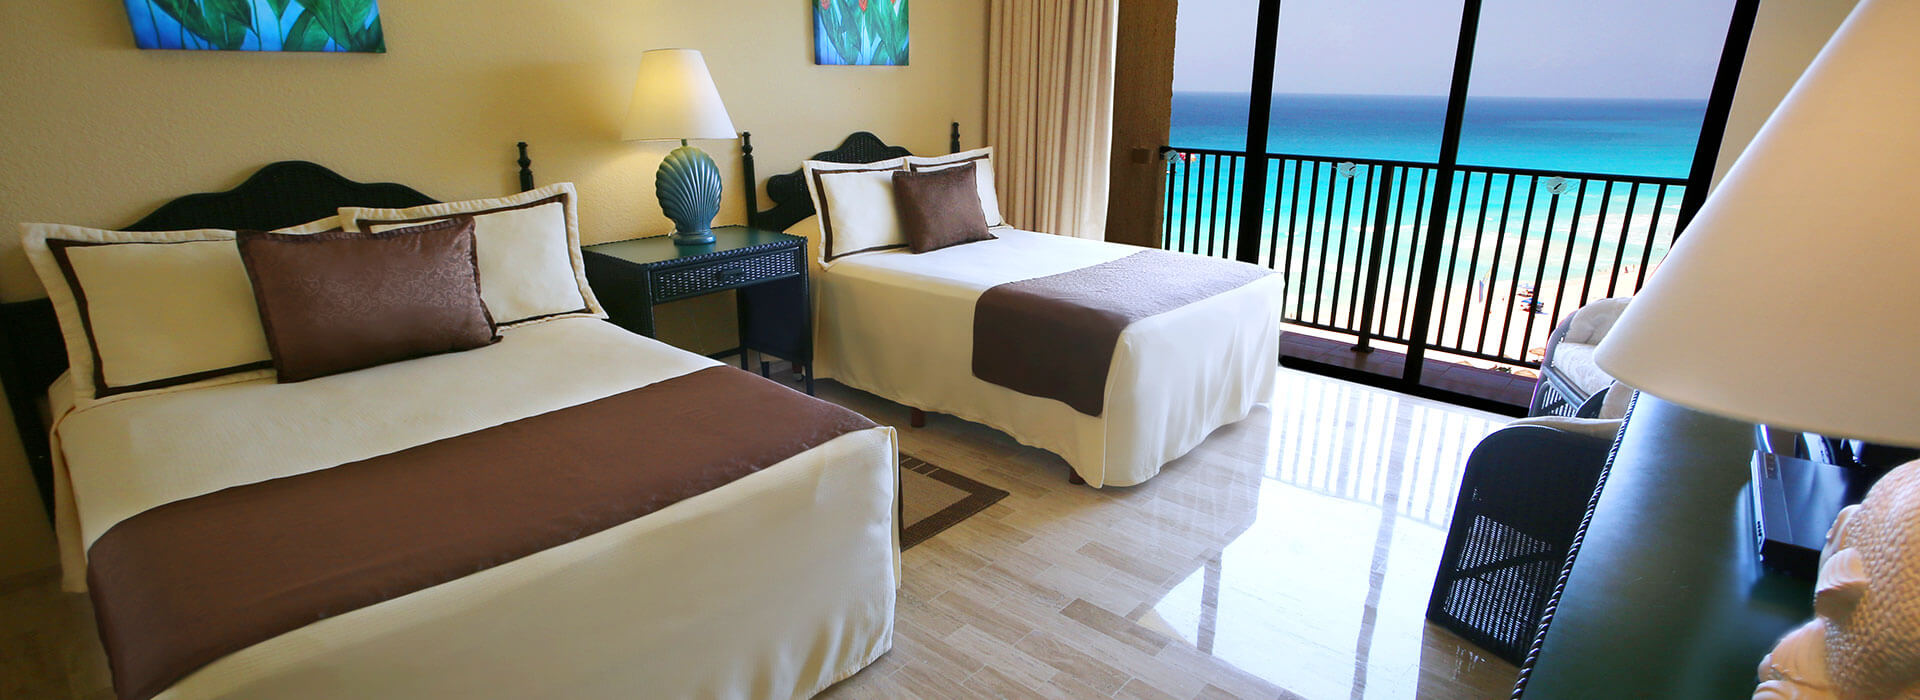 Junior Suite Doble con vista al mar